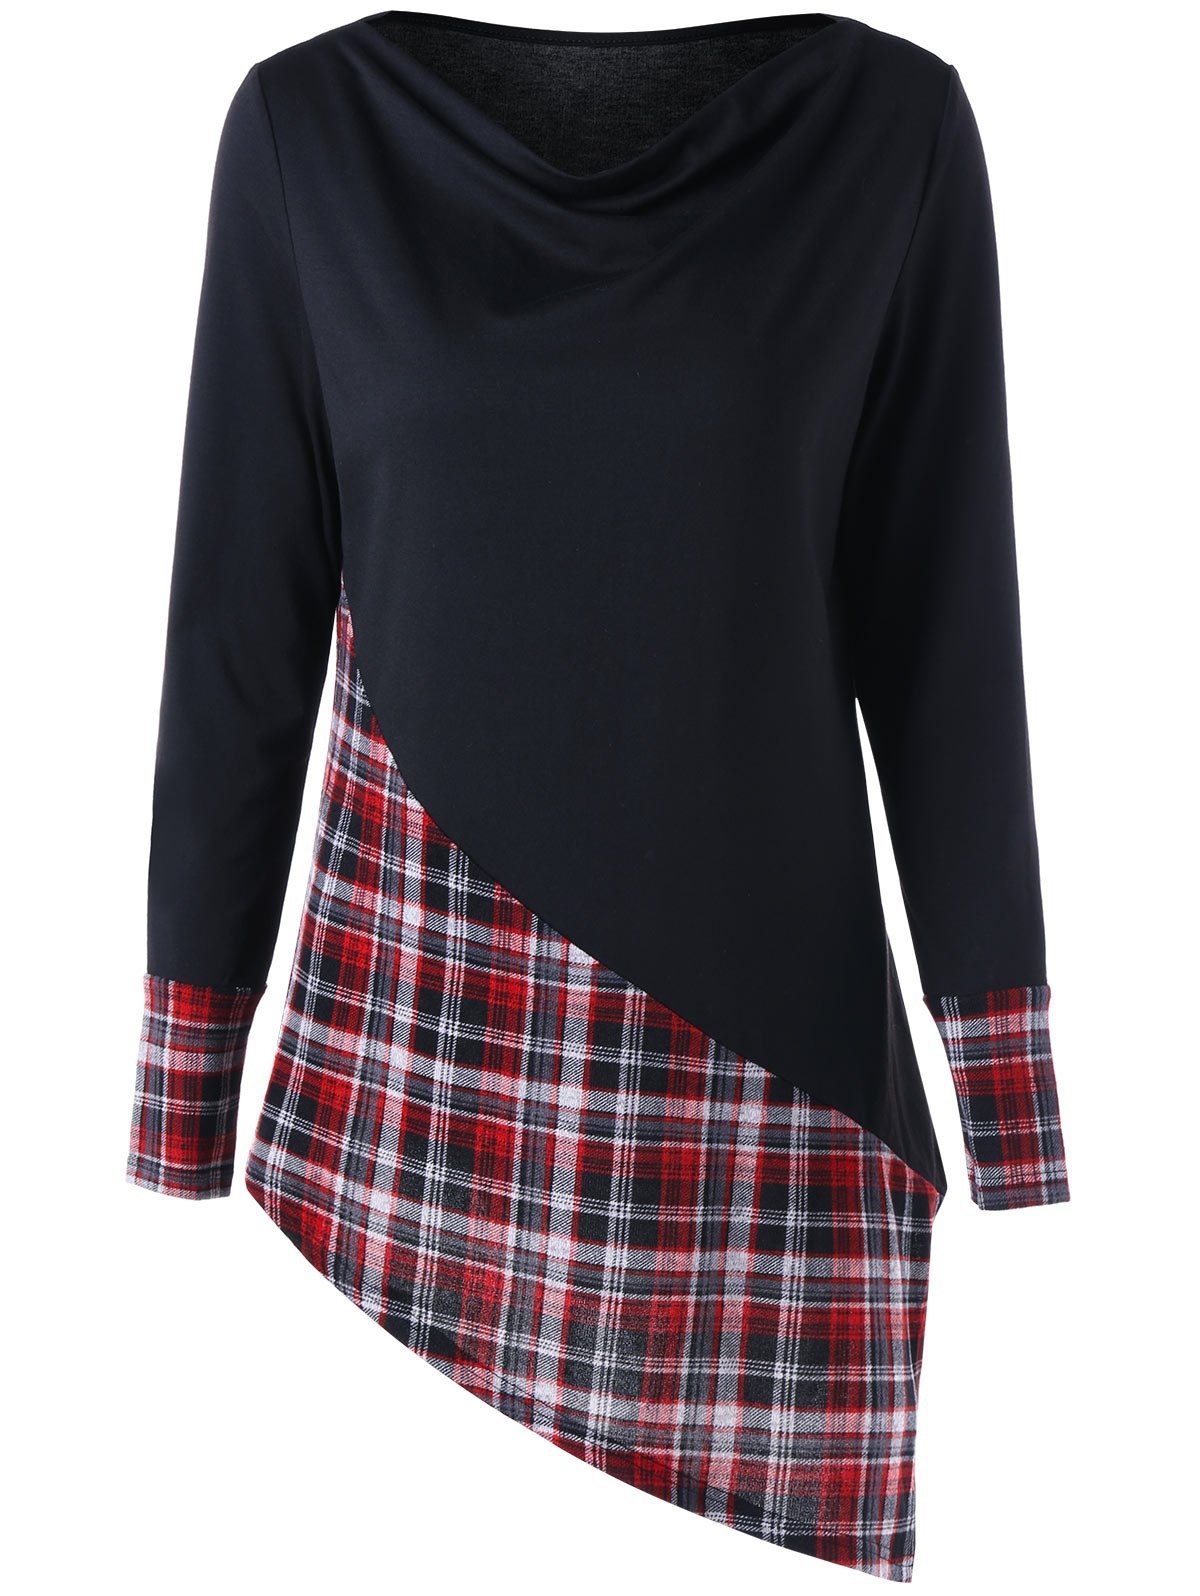 Long Sleeve Plaid Panel Asymmetric TopWOMEN<br><br>Size: 2XL; Color: BLACK&amp;RED; Material: Polyester,Spandex; Shirt Length: Long; Sleeve Length: Full; Collar: Cowl Neck; Style: Fashion; Pattern Type: Plaid; Season: Fall,Spring; Weight: 0.2830kg; Package Contents: 1 x Top;